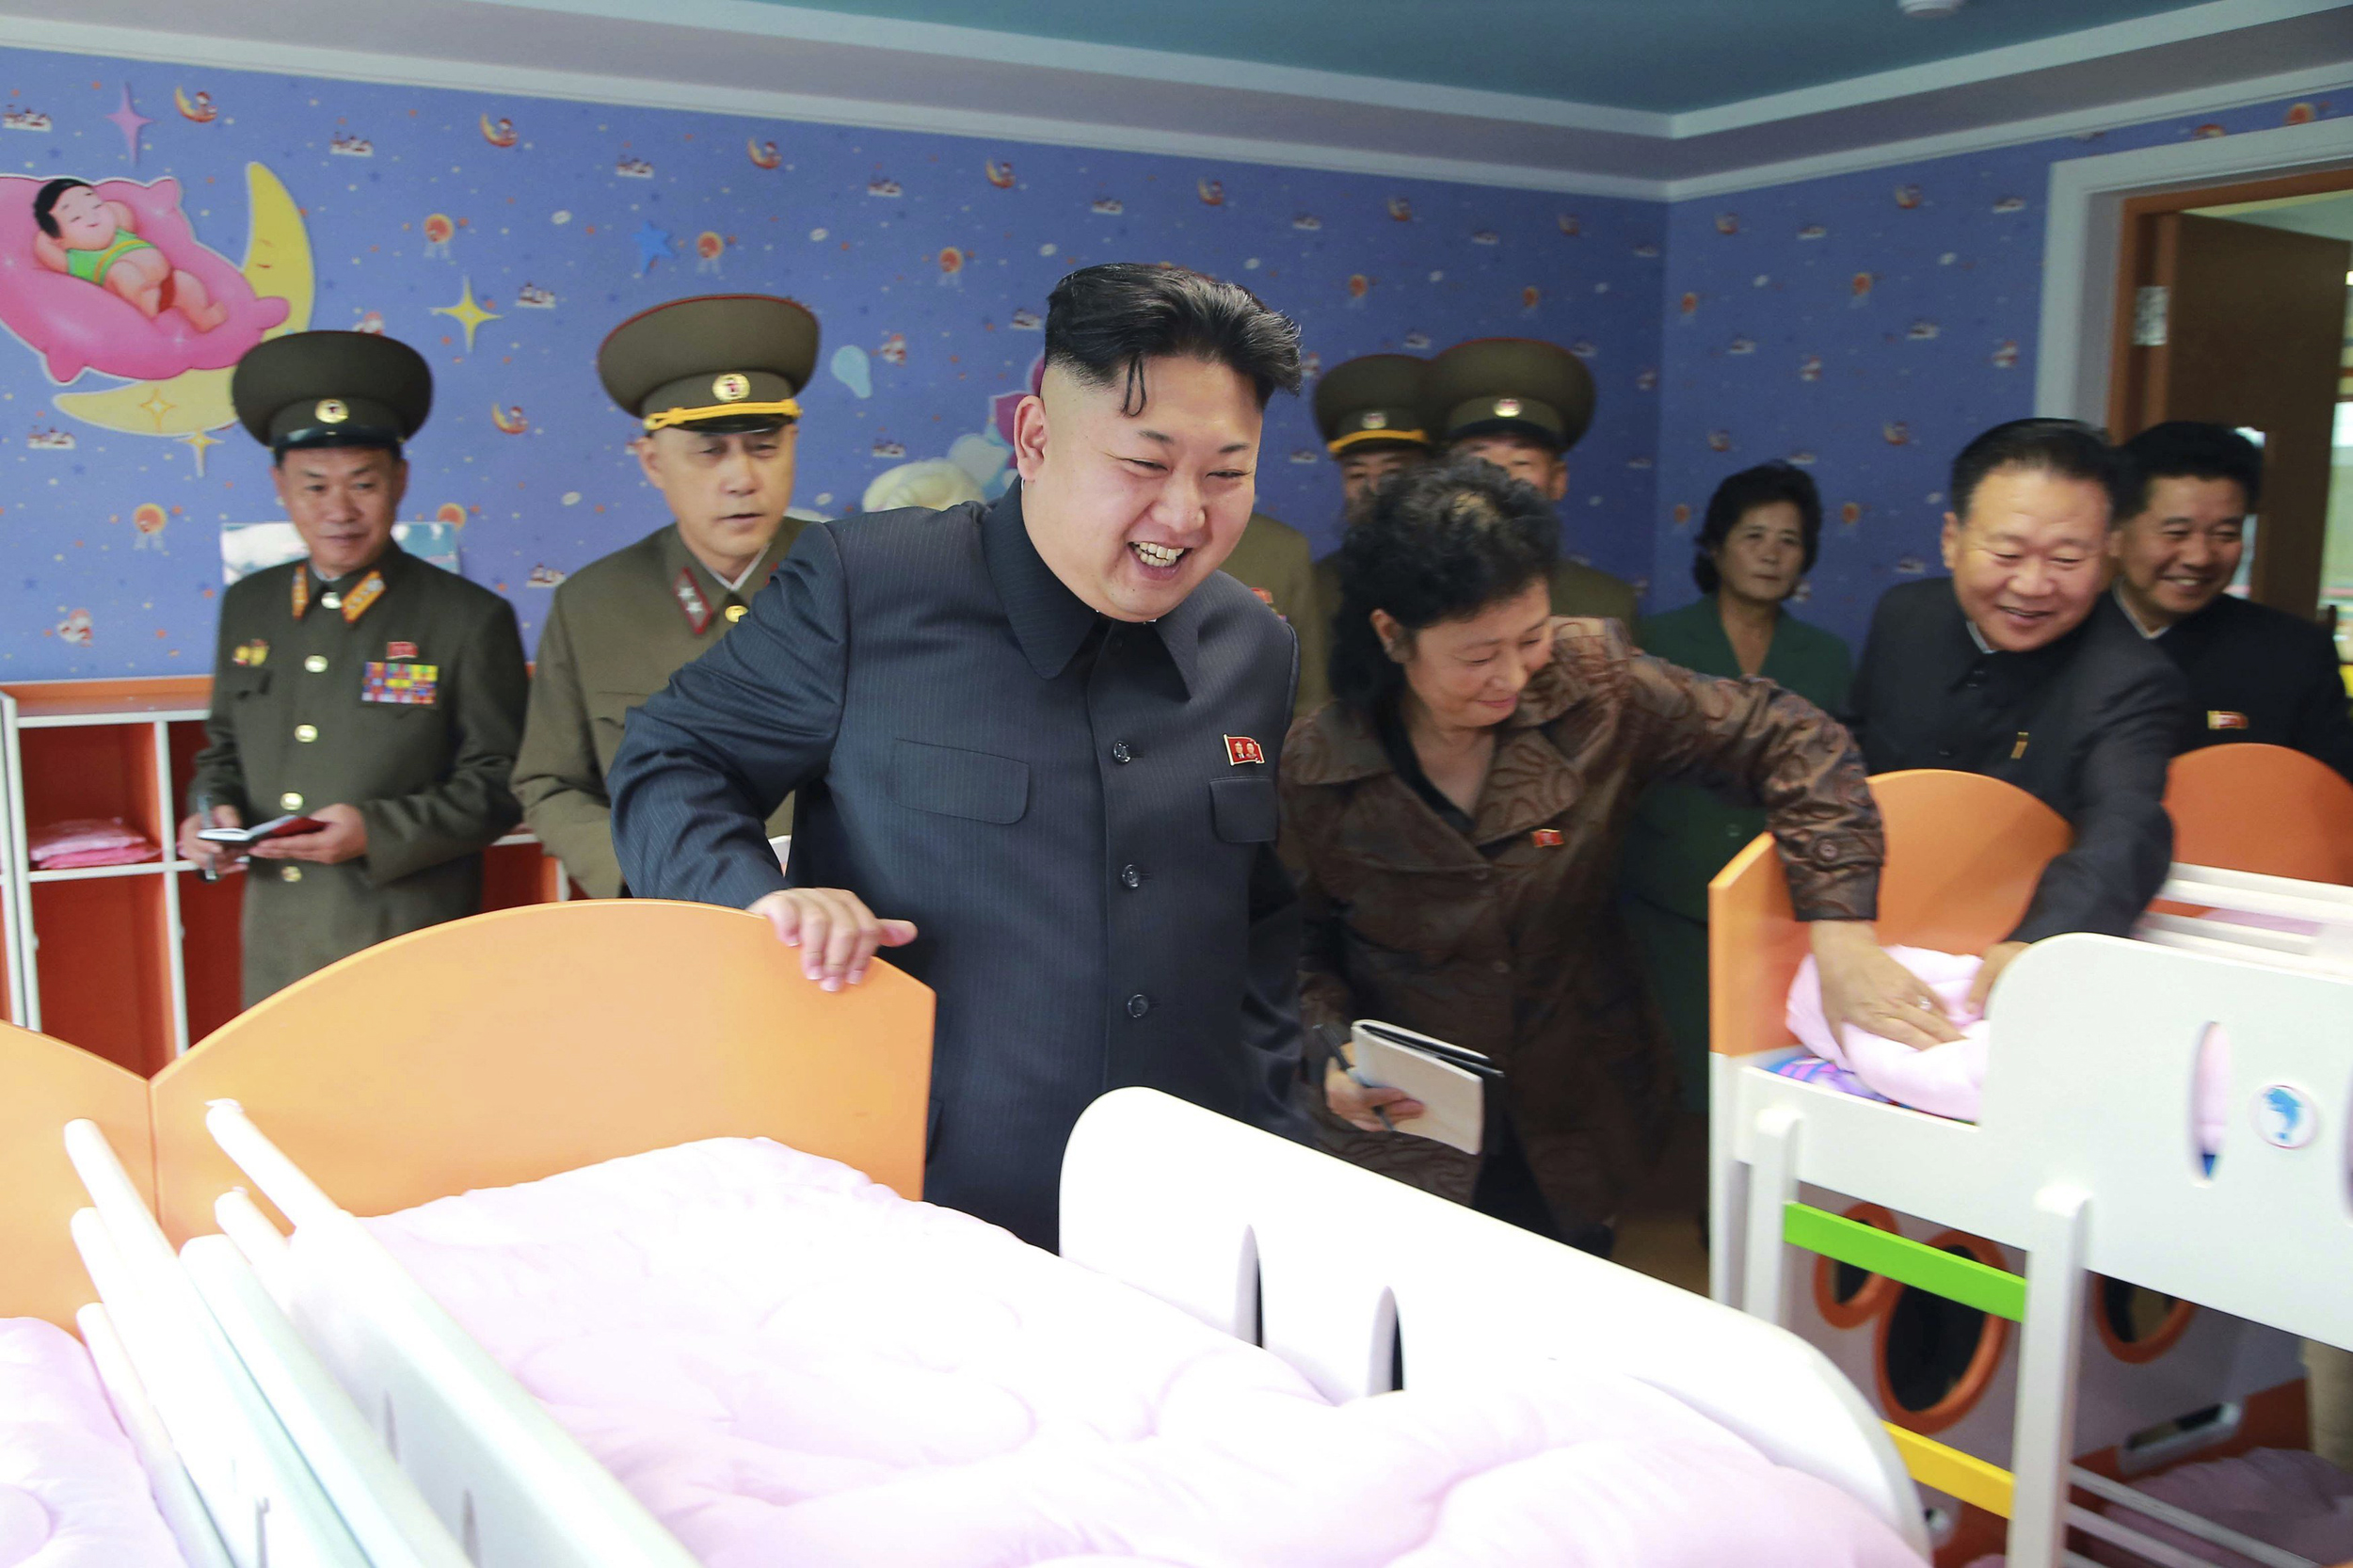 Kim Jong Un Closely Inspects Hello Kitty Set at Orphanage ...